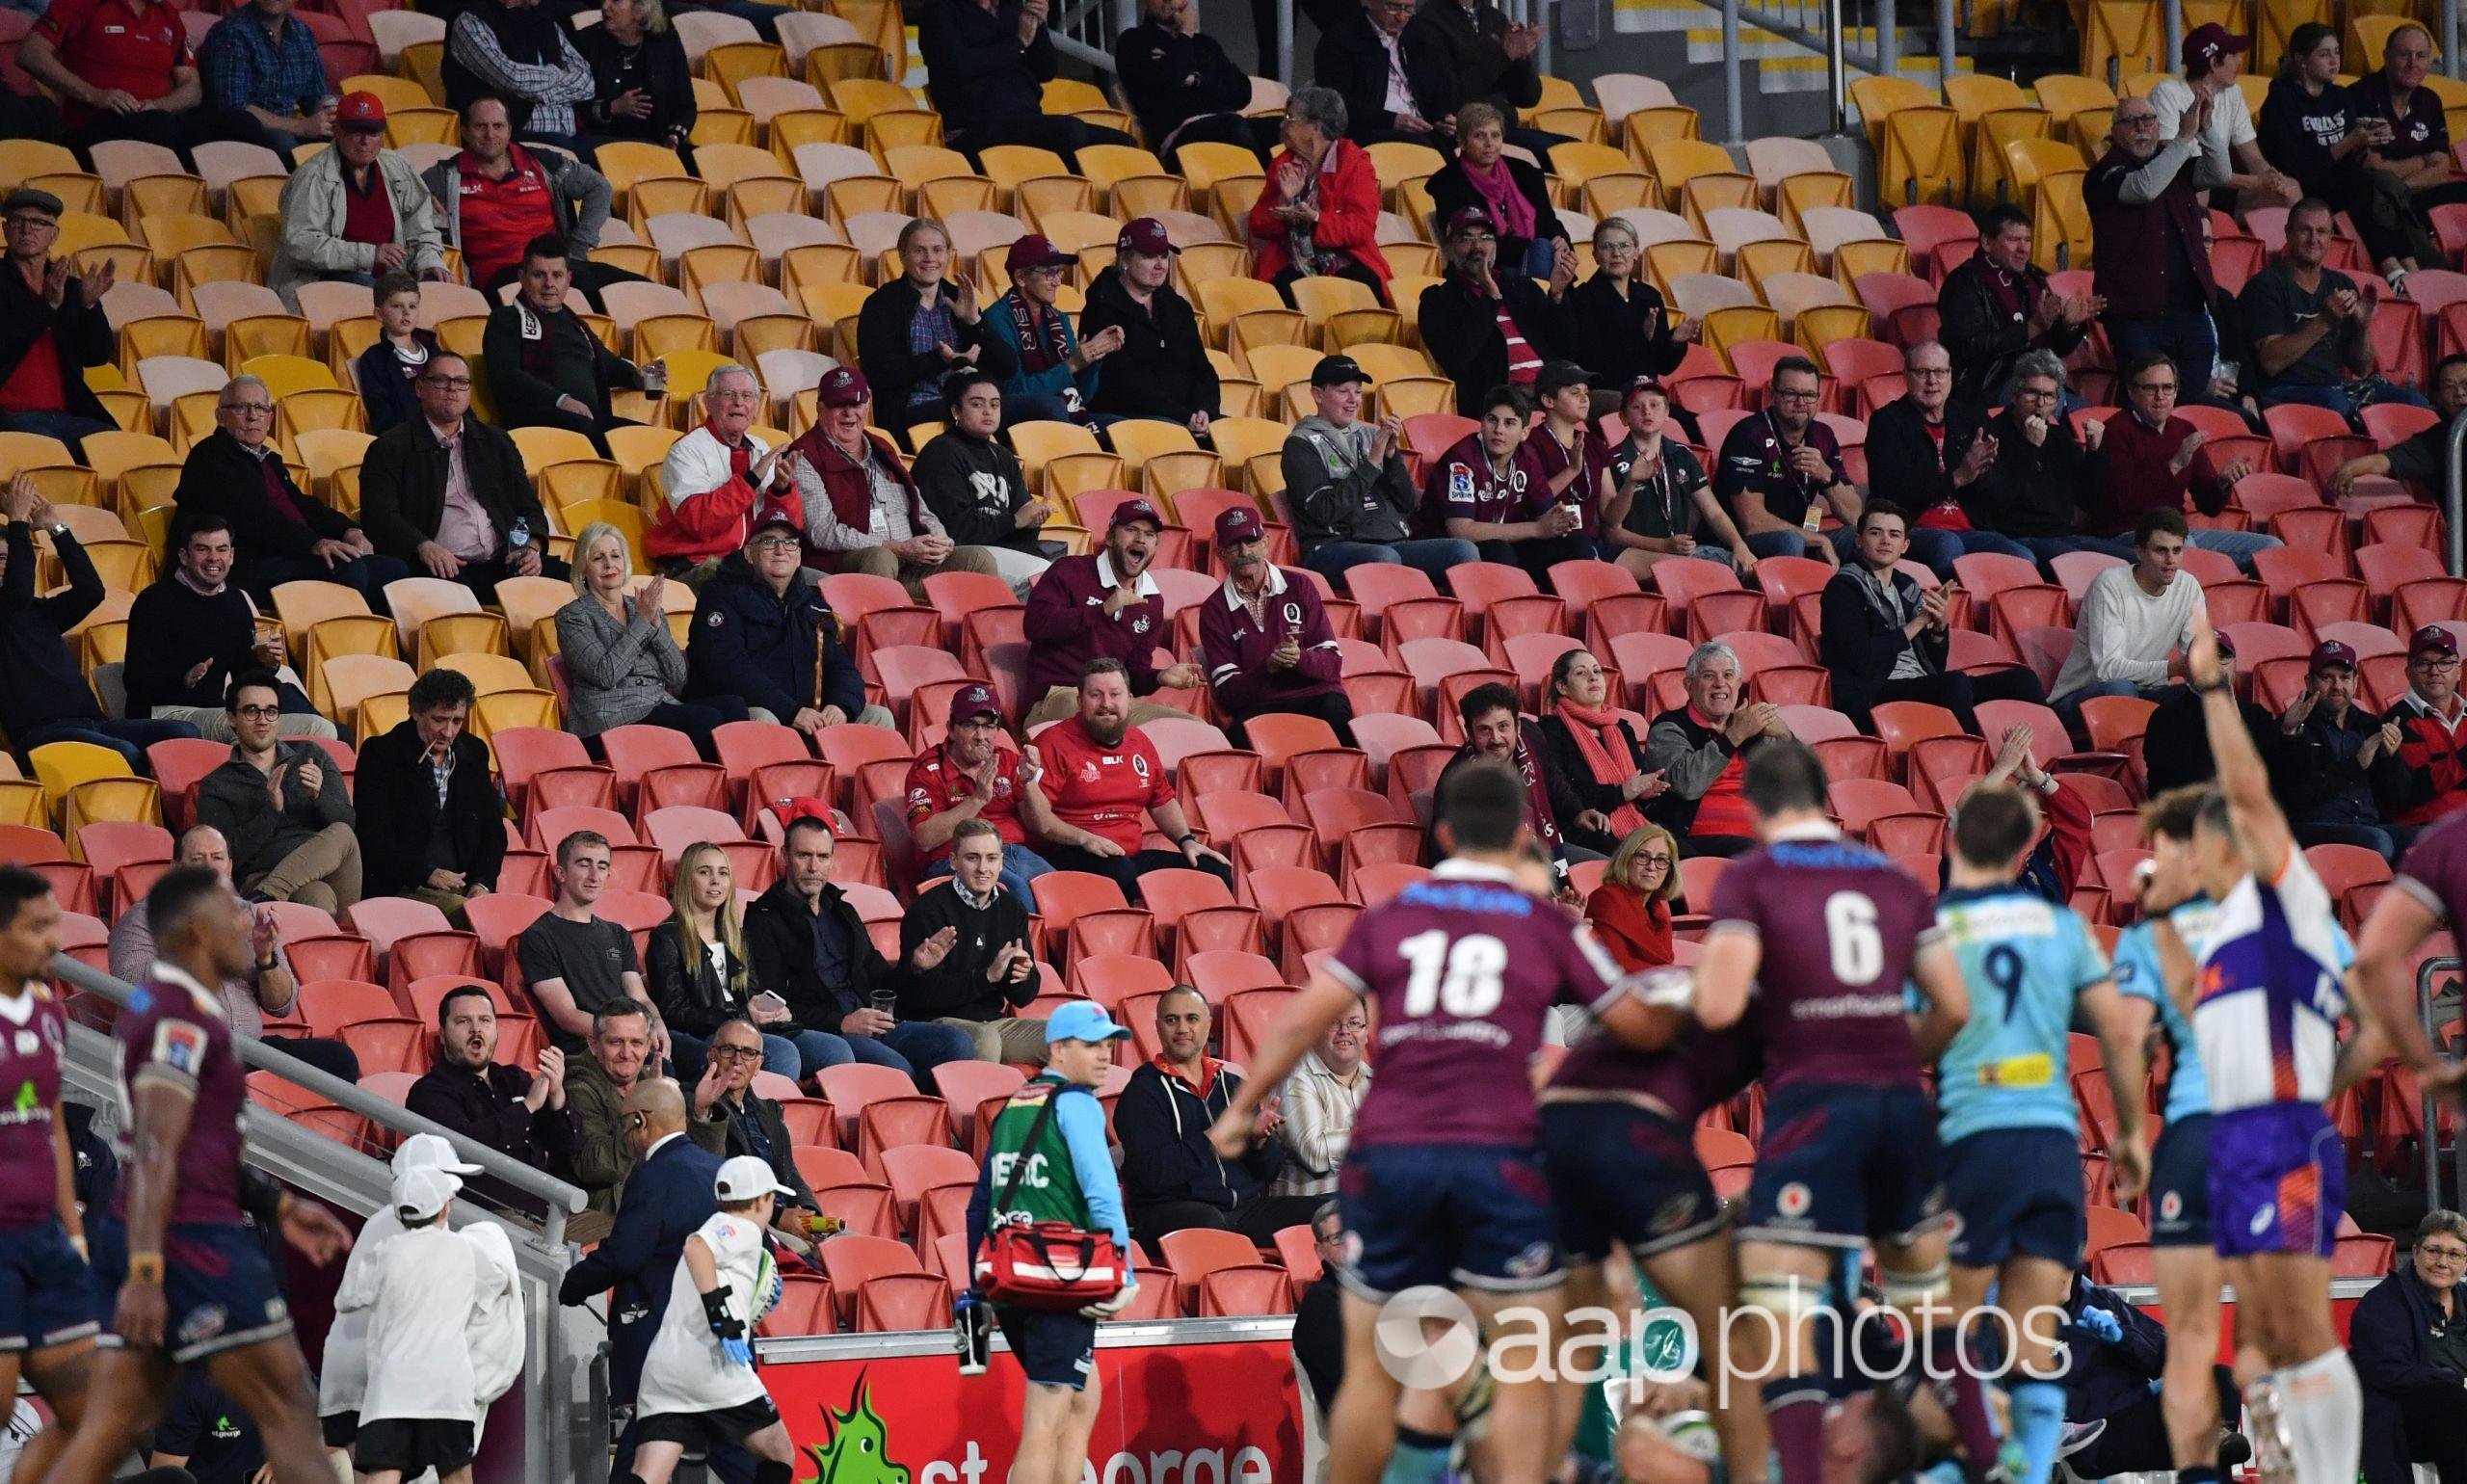 The Super Rugby match between Queensland Reds and NSW Waratahs